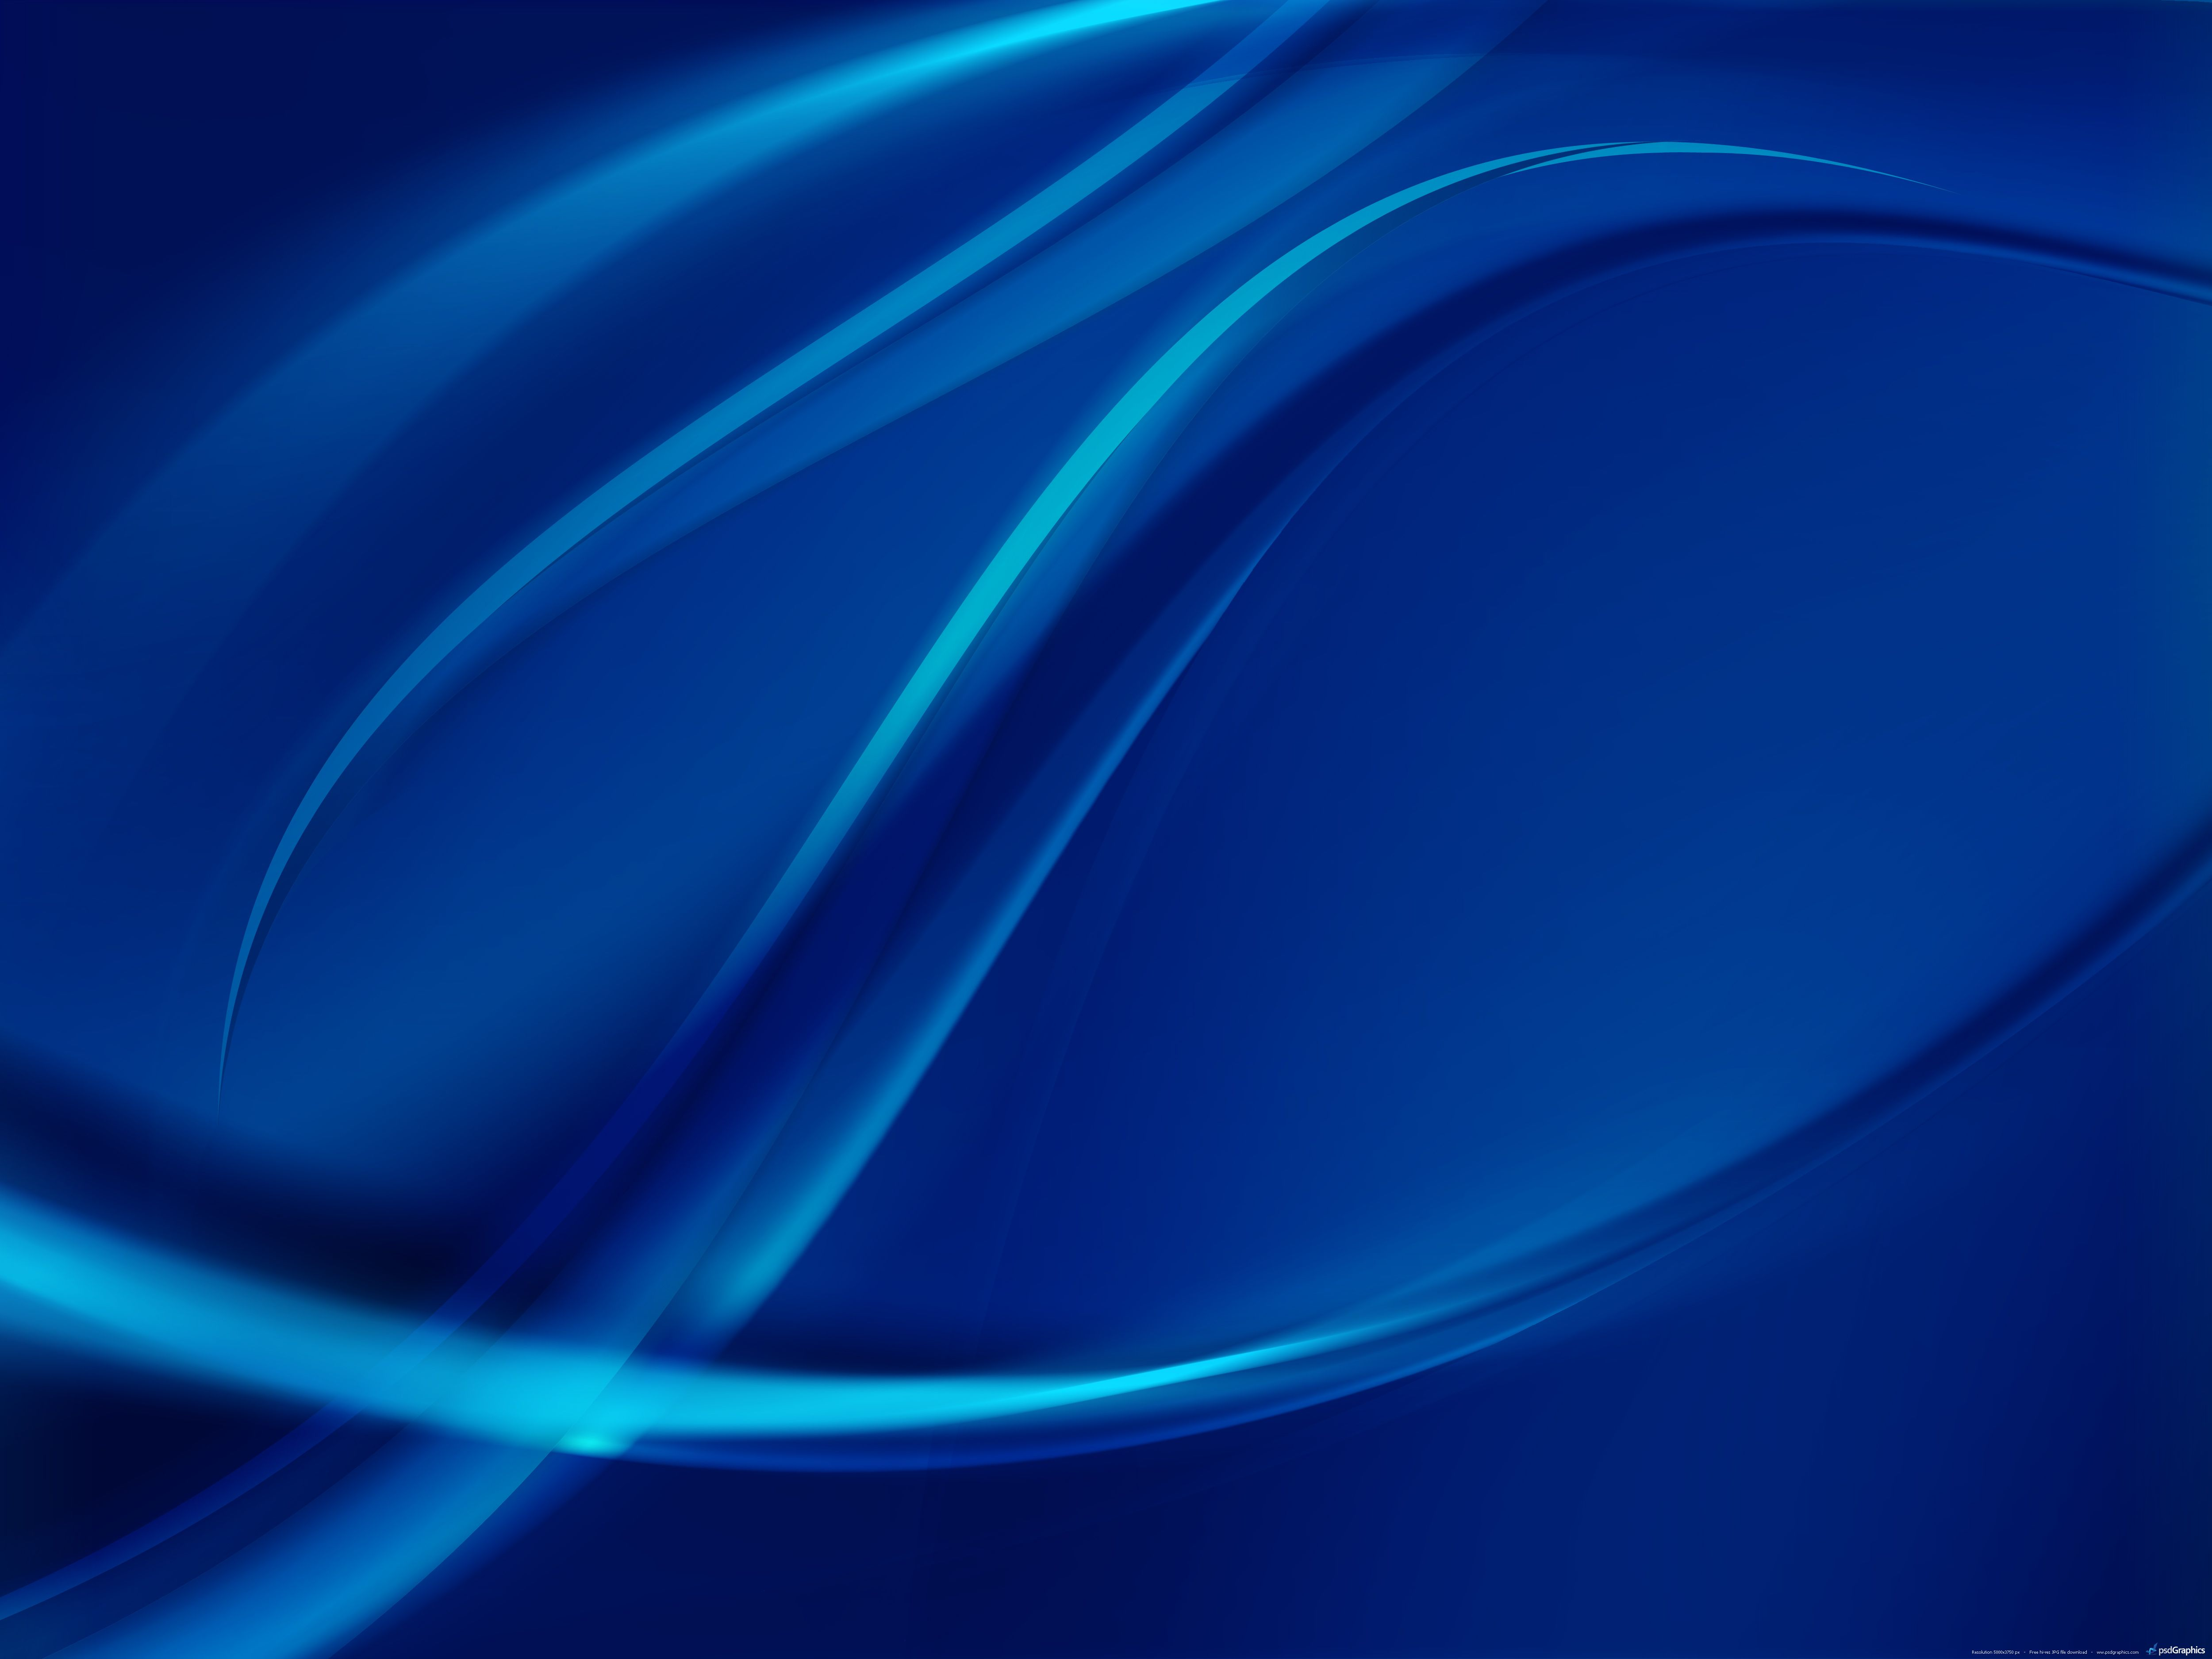 Web Design Backgrounds Abstract Wave Background Psdgraphics